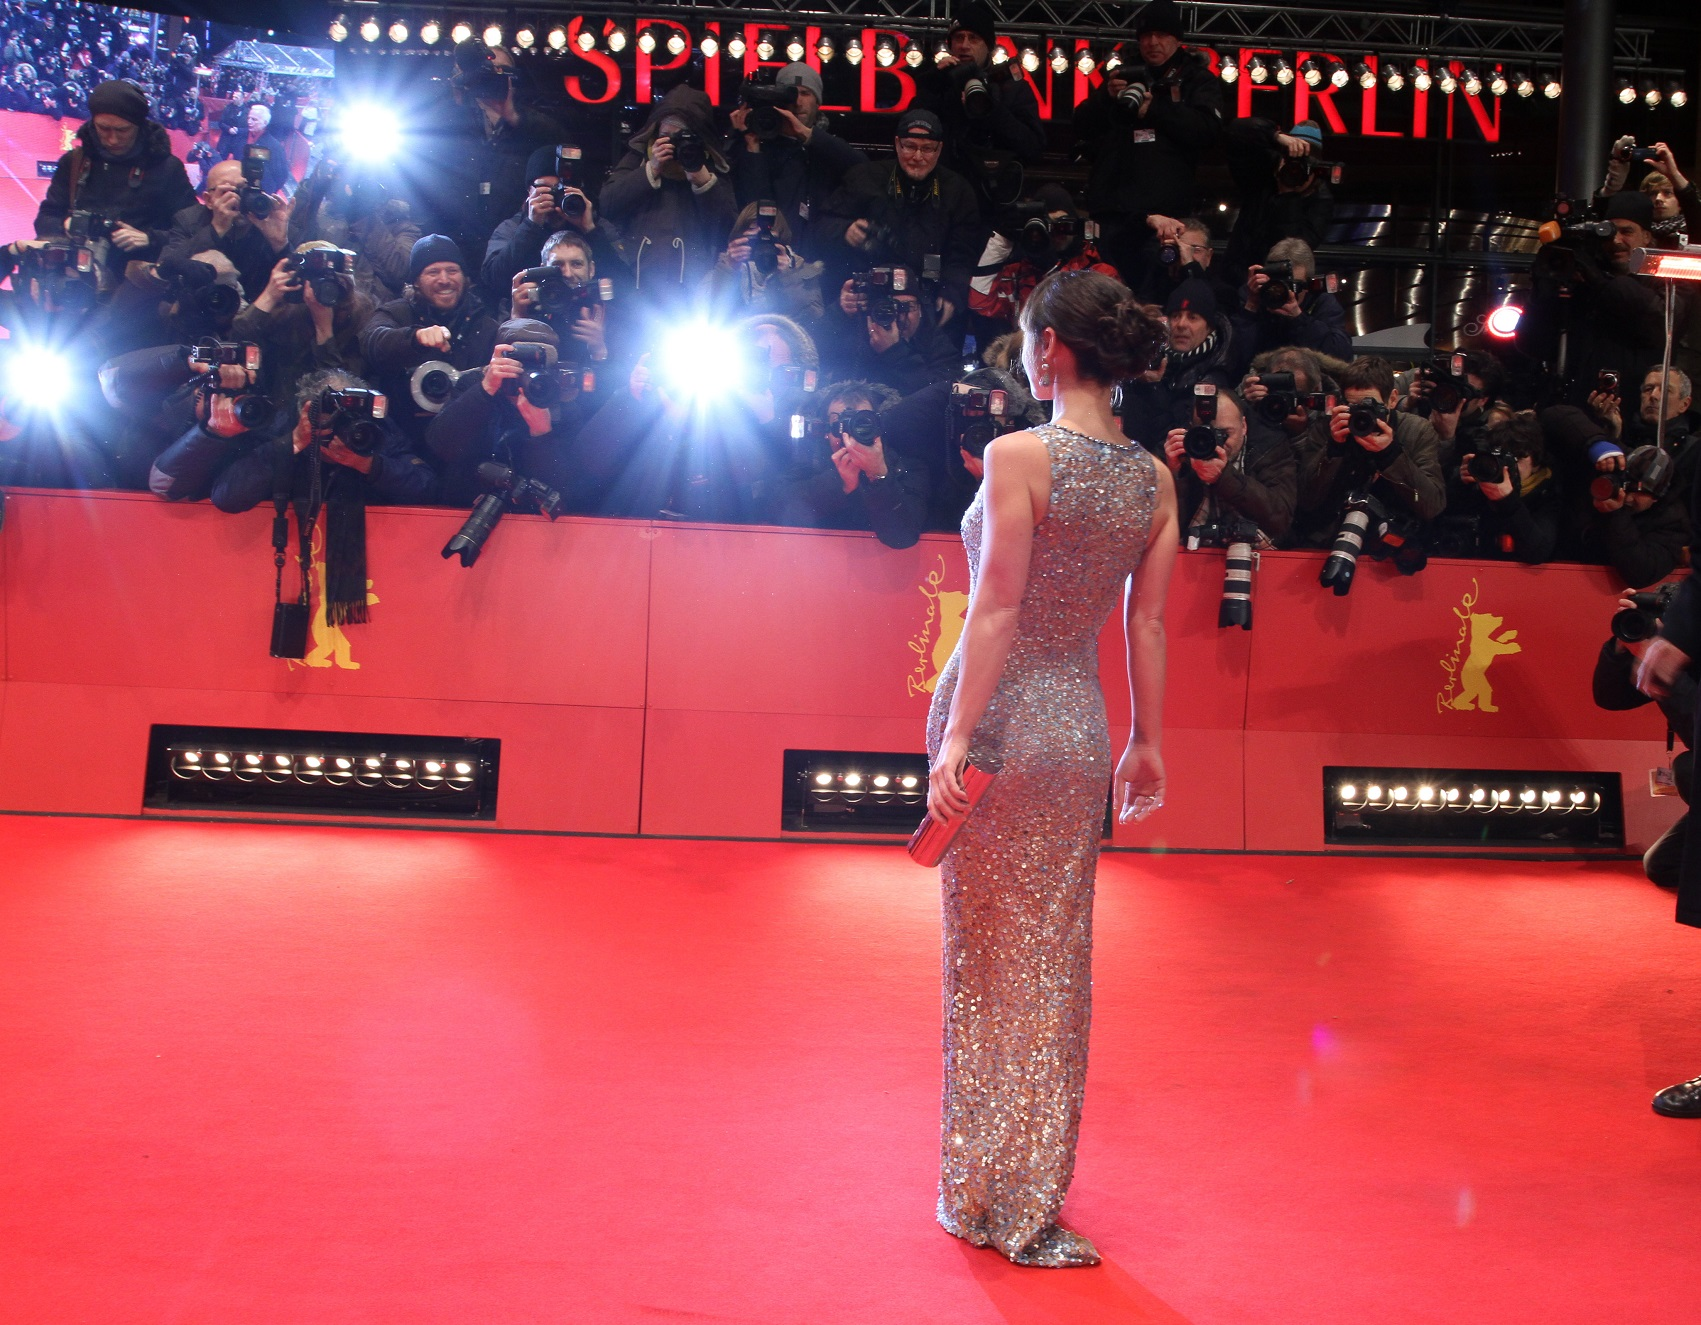 Model getting picture taken on red carpet